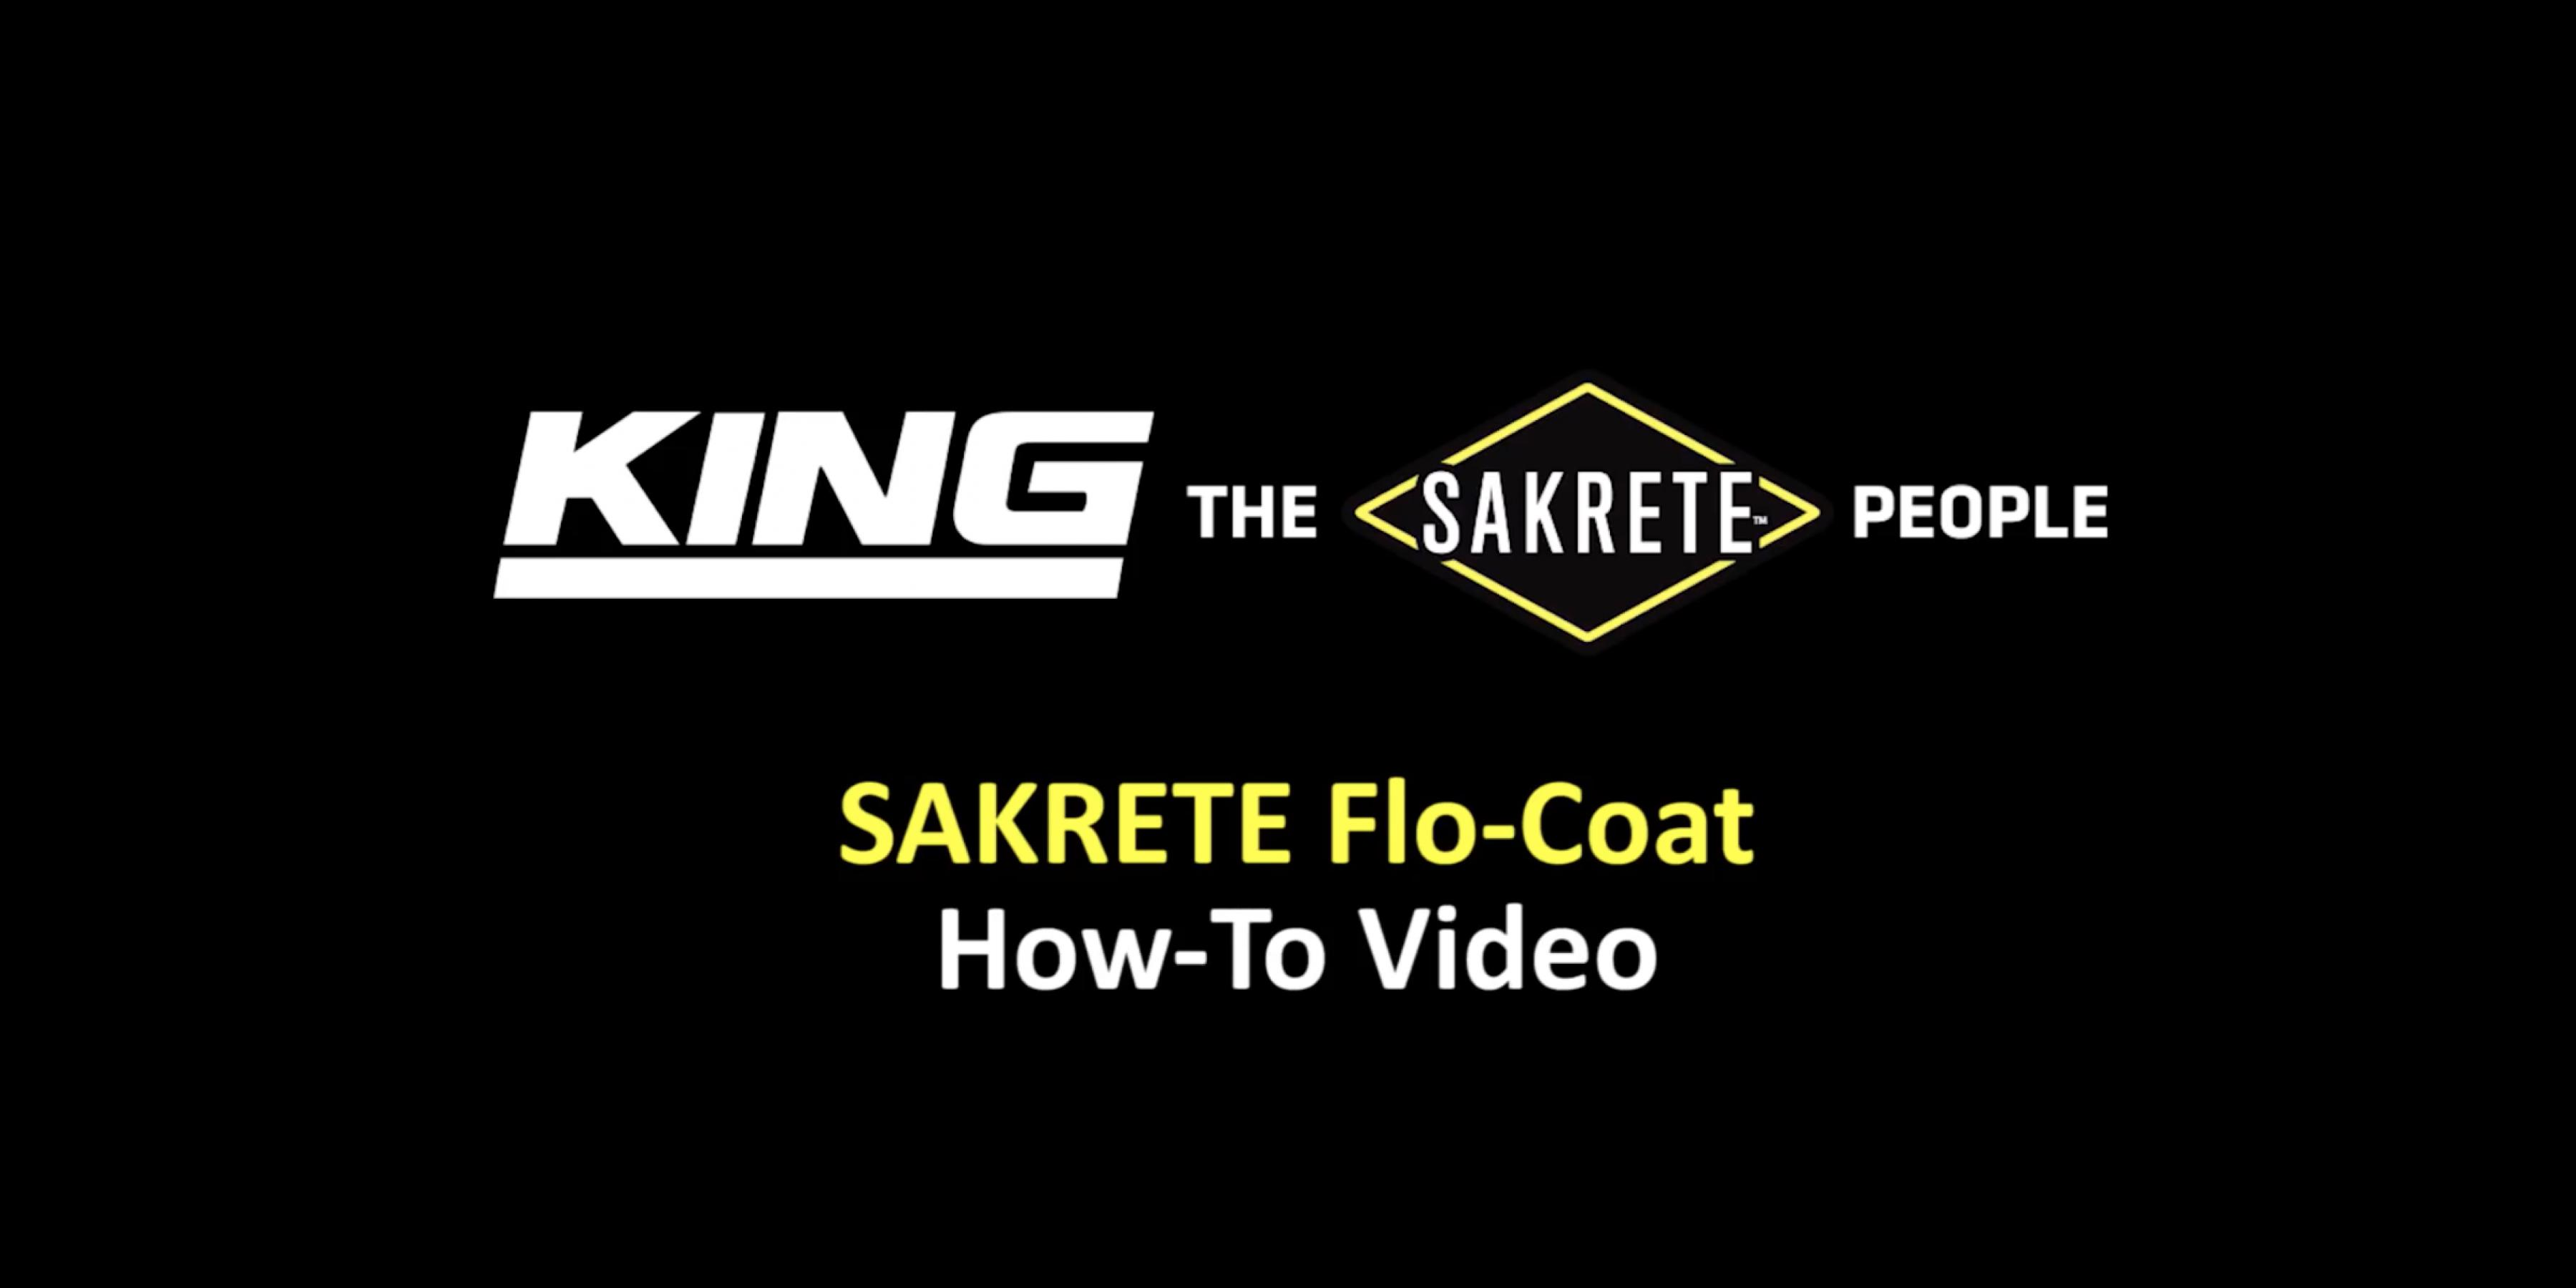 SAKRETE Flo-Coat How-To Video